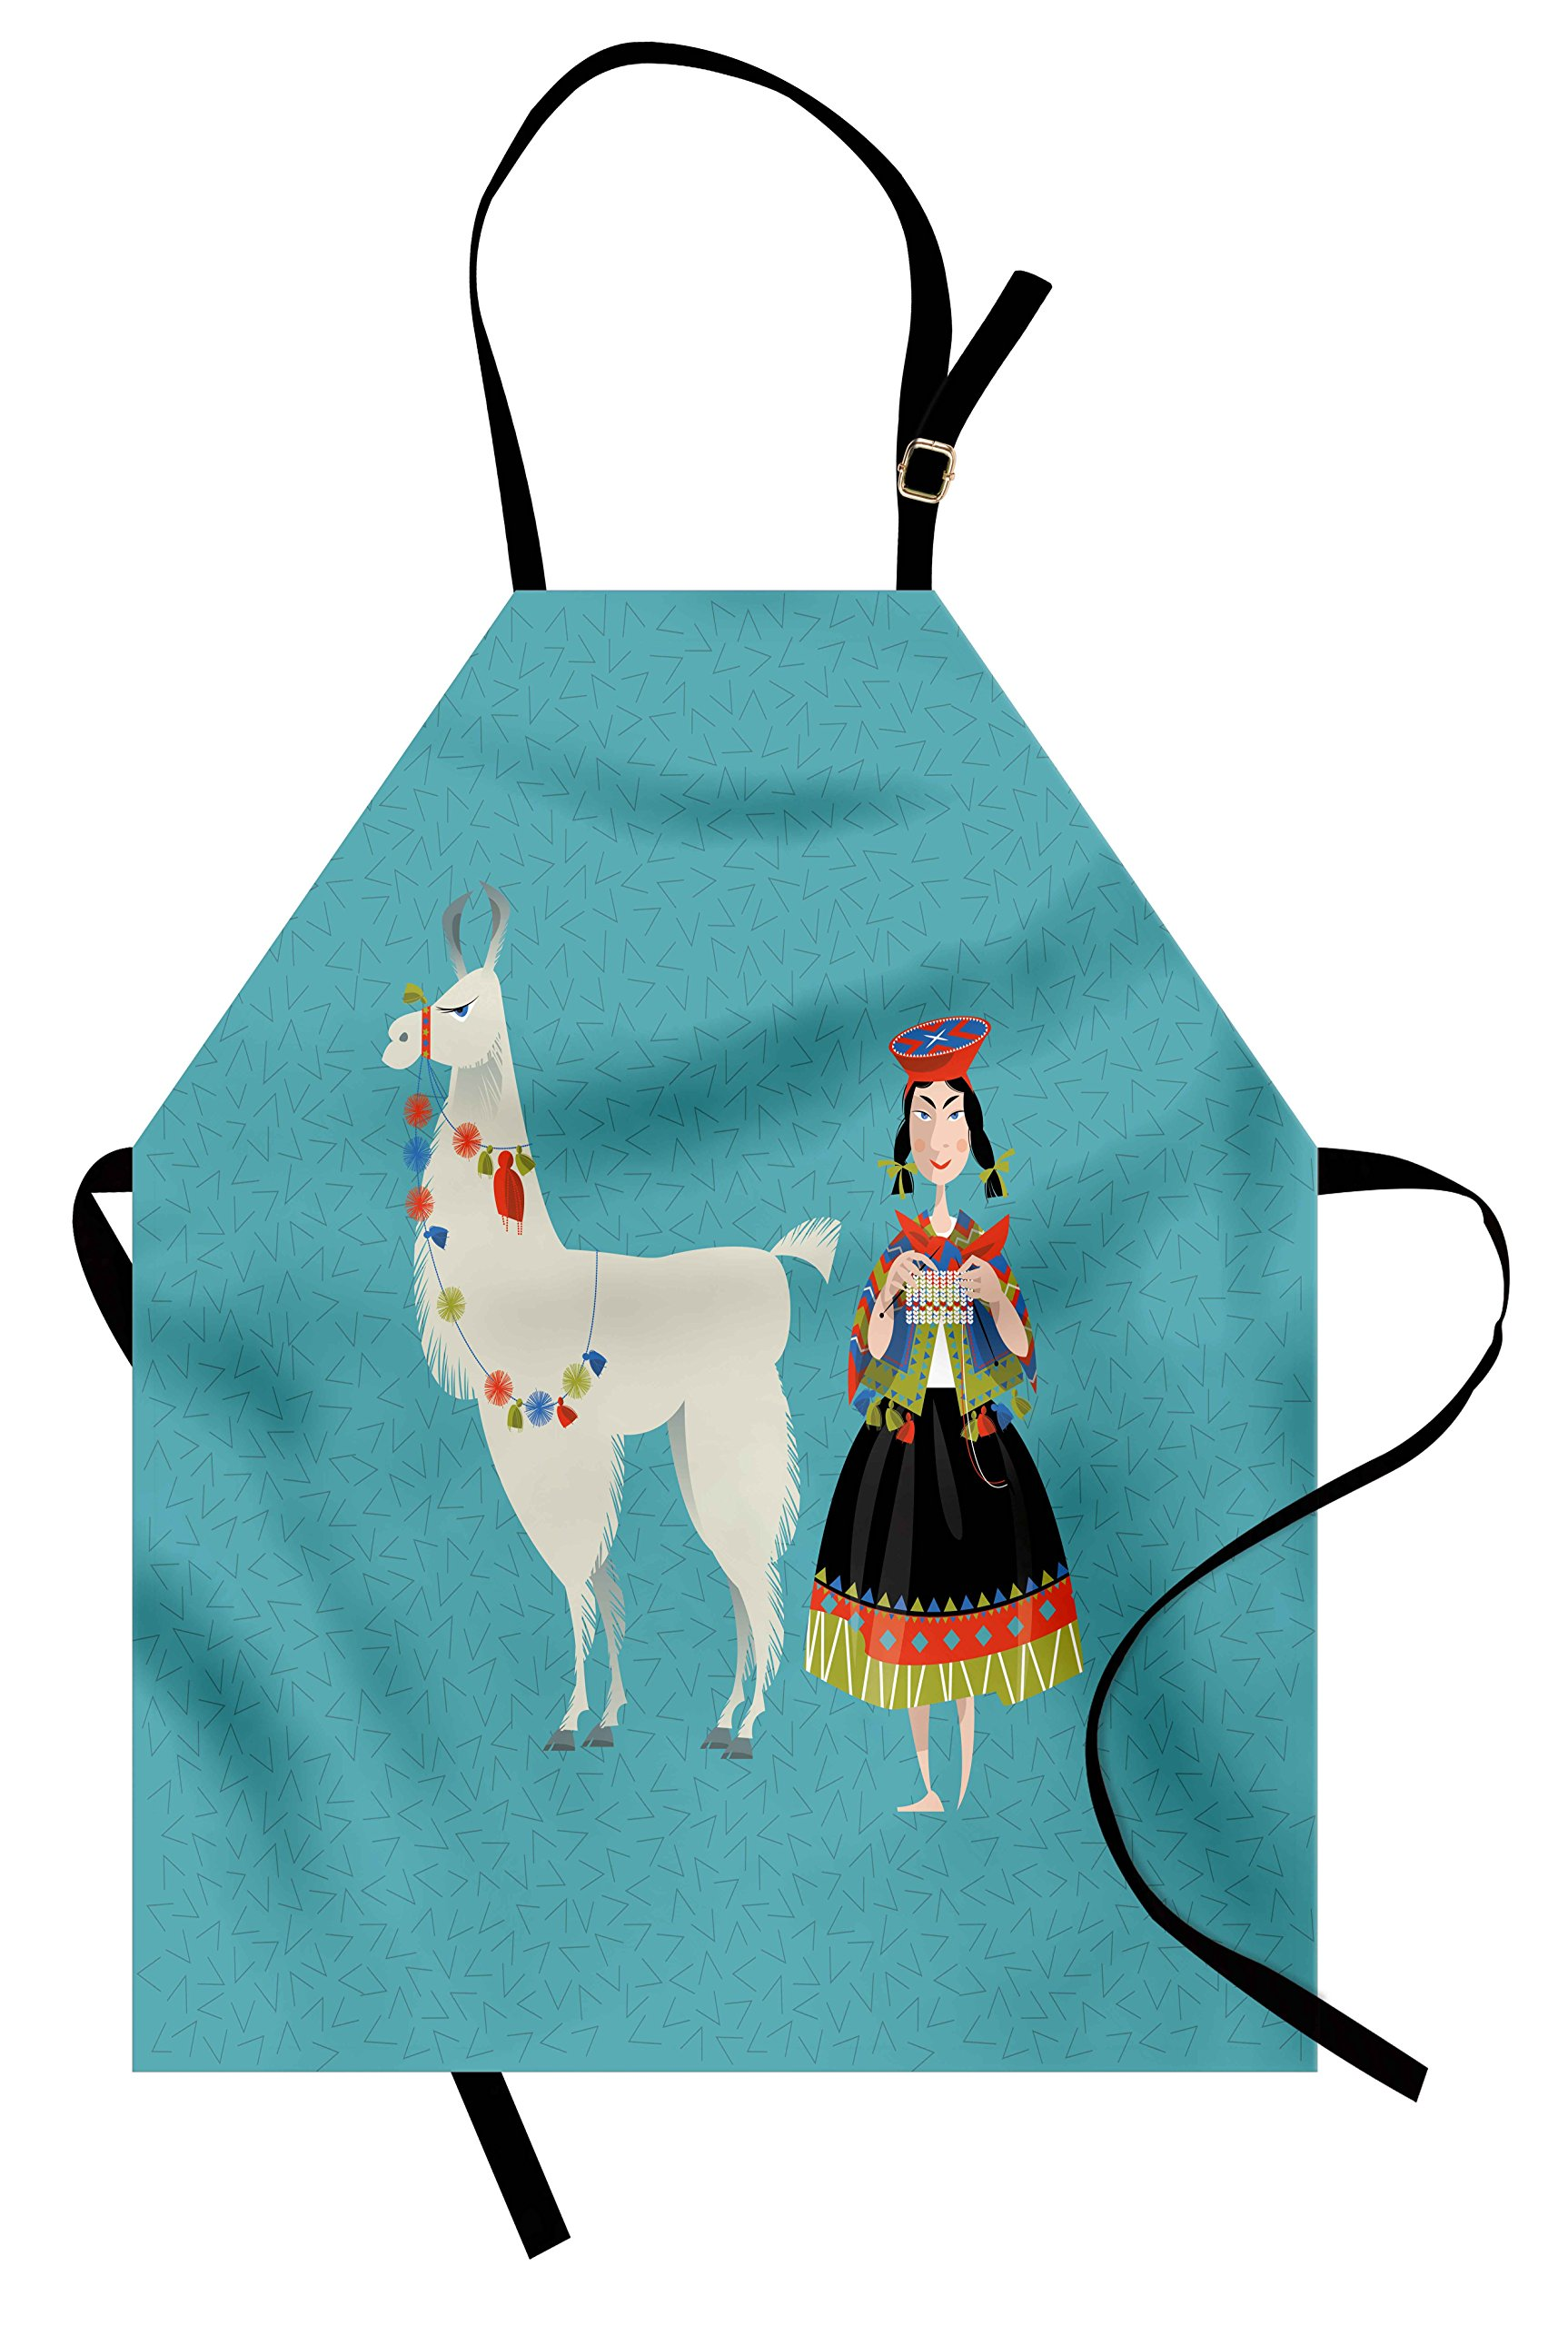 Ambesonne Llama Apron, Peruvian Woman Knitting with a White Alpaca Wrapped with Flower Colorful Illustration, Unisex Kitchen Bib Apron with Adjustable Neck for Cooking Baking Gardening, Multicolor